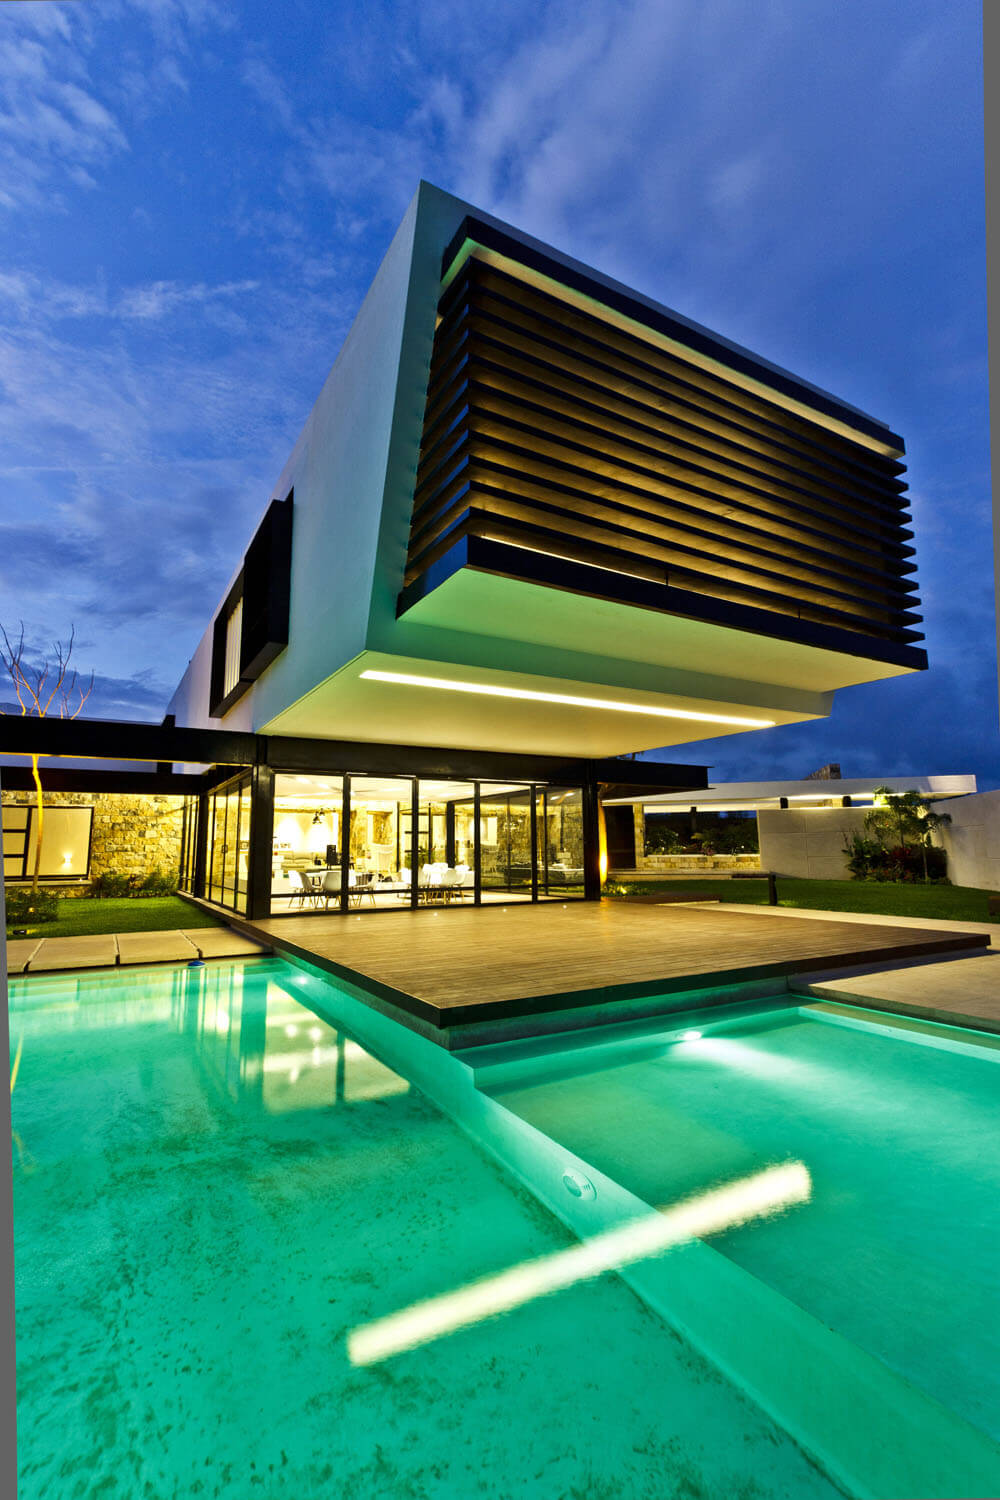 Yucatan cantilevered house closeup by the pool